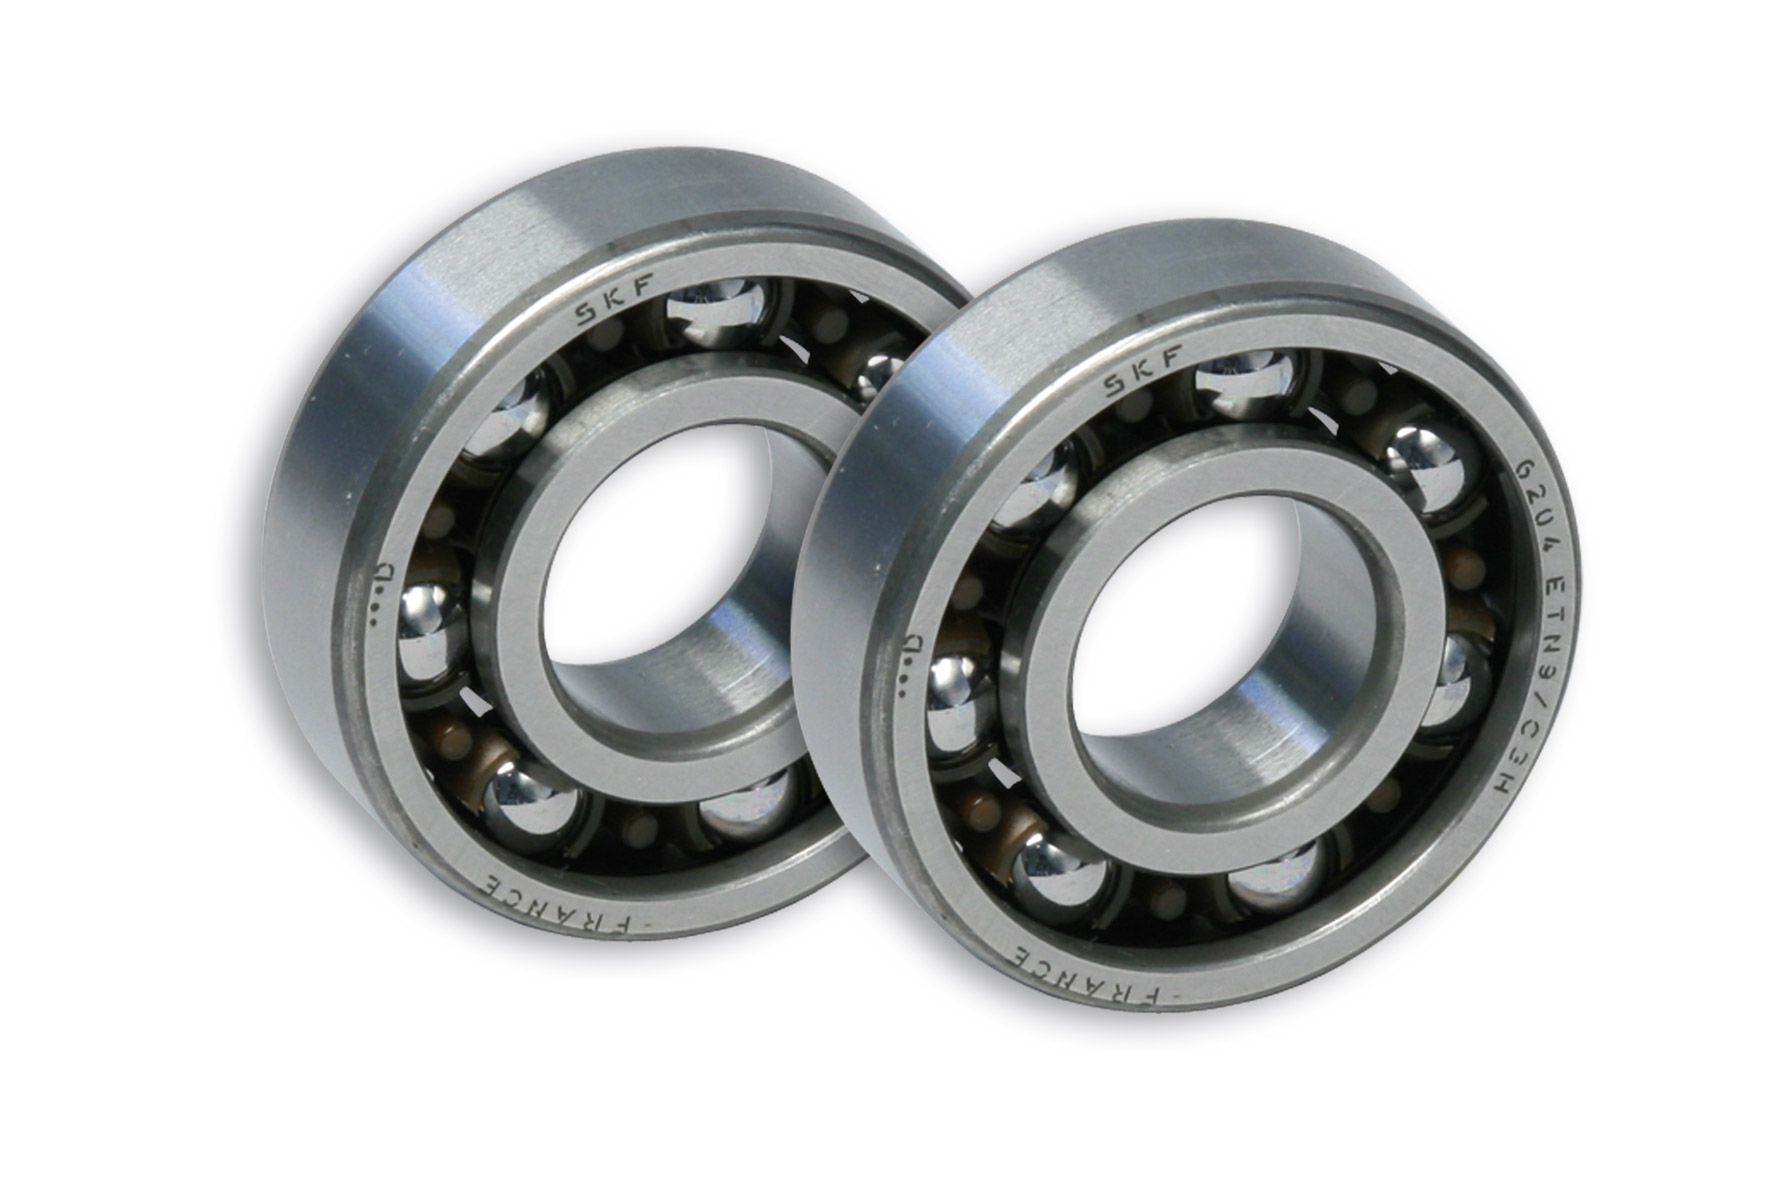 2 ROLLER BEARINGS with BALLS Ø 20x47x14 (C4) for CRANKSH. moto DERBI-scooter MIN./YAM.50